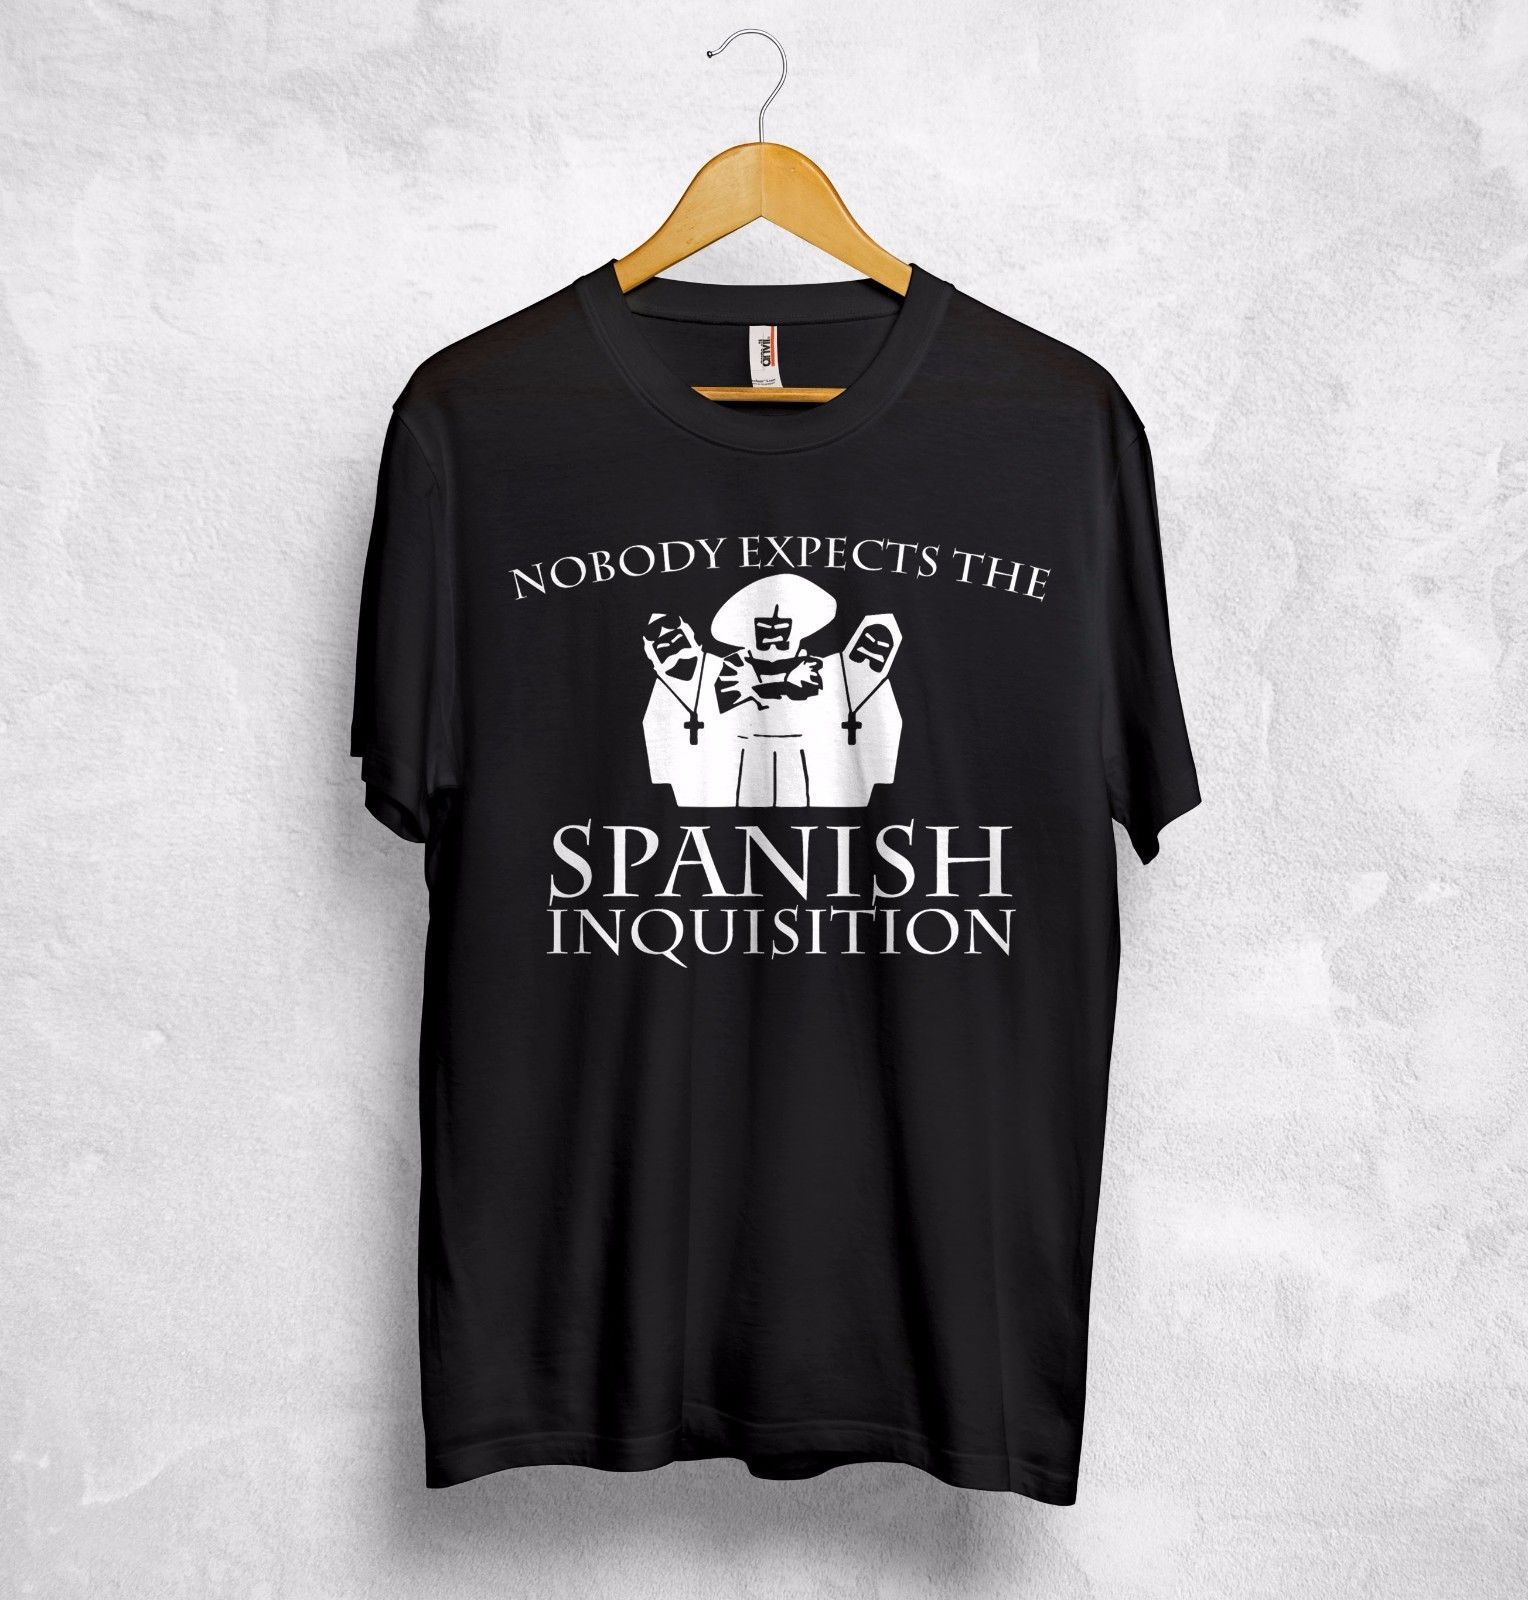 Click to buy nobody expects the spanish inquisition t shirt click to buy nobody expects the spanish inquisition t shirt monty python negle Choice Image